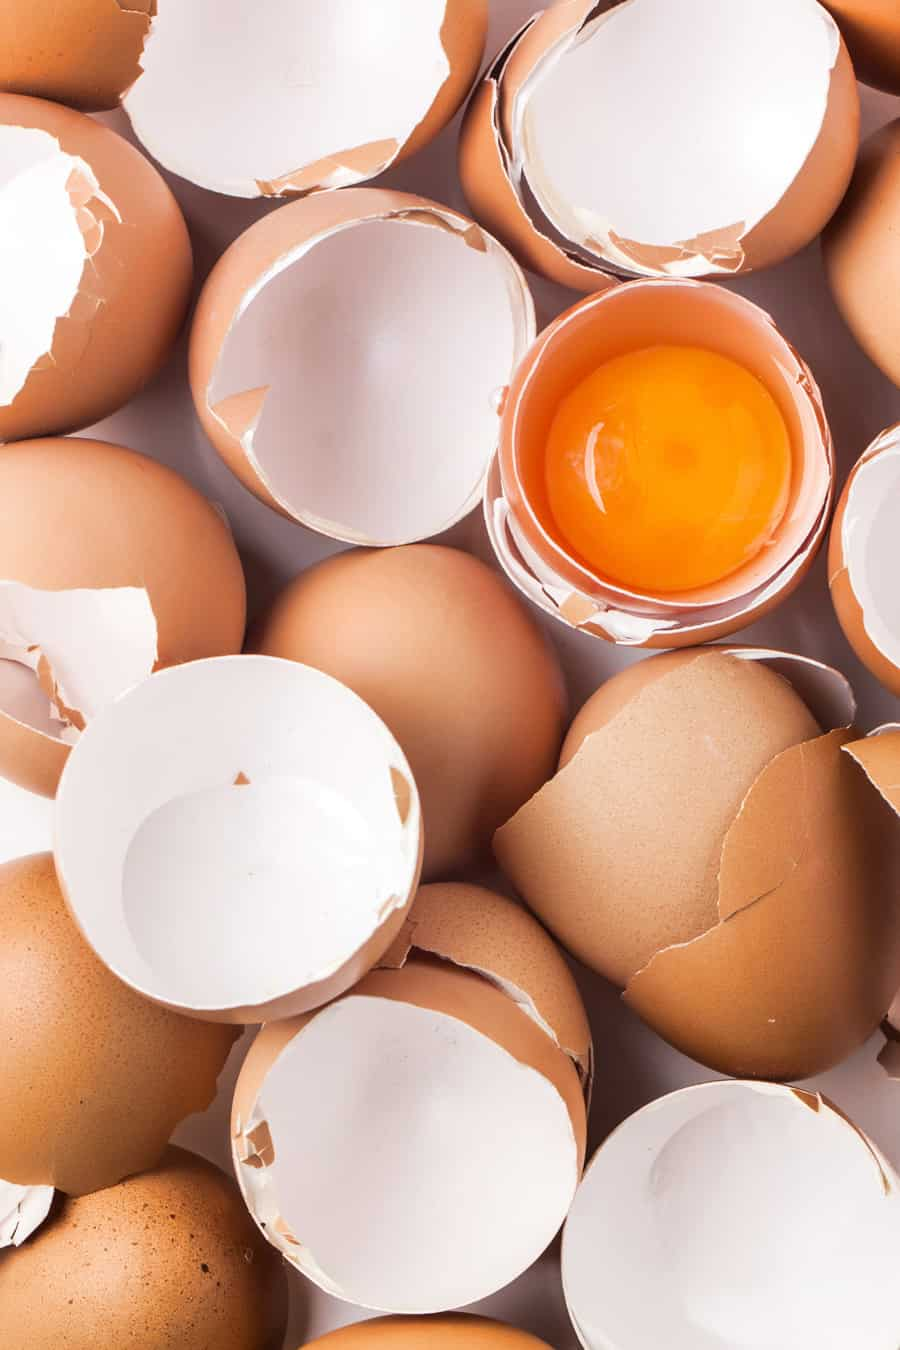 egg shells and yolks